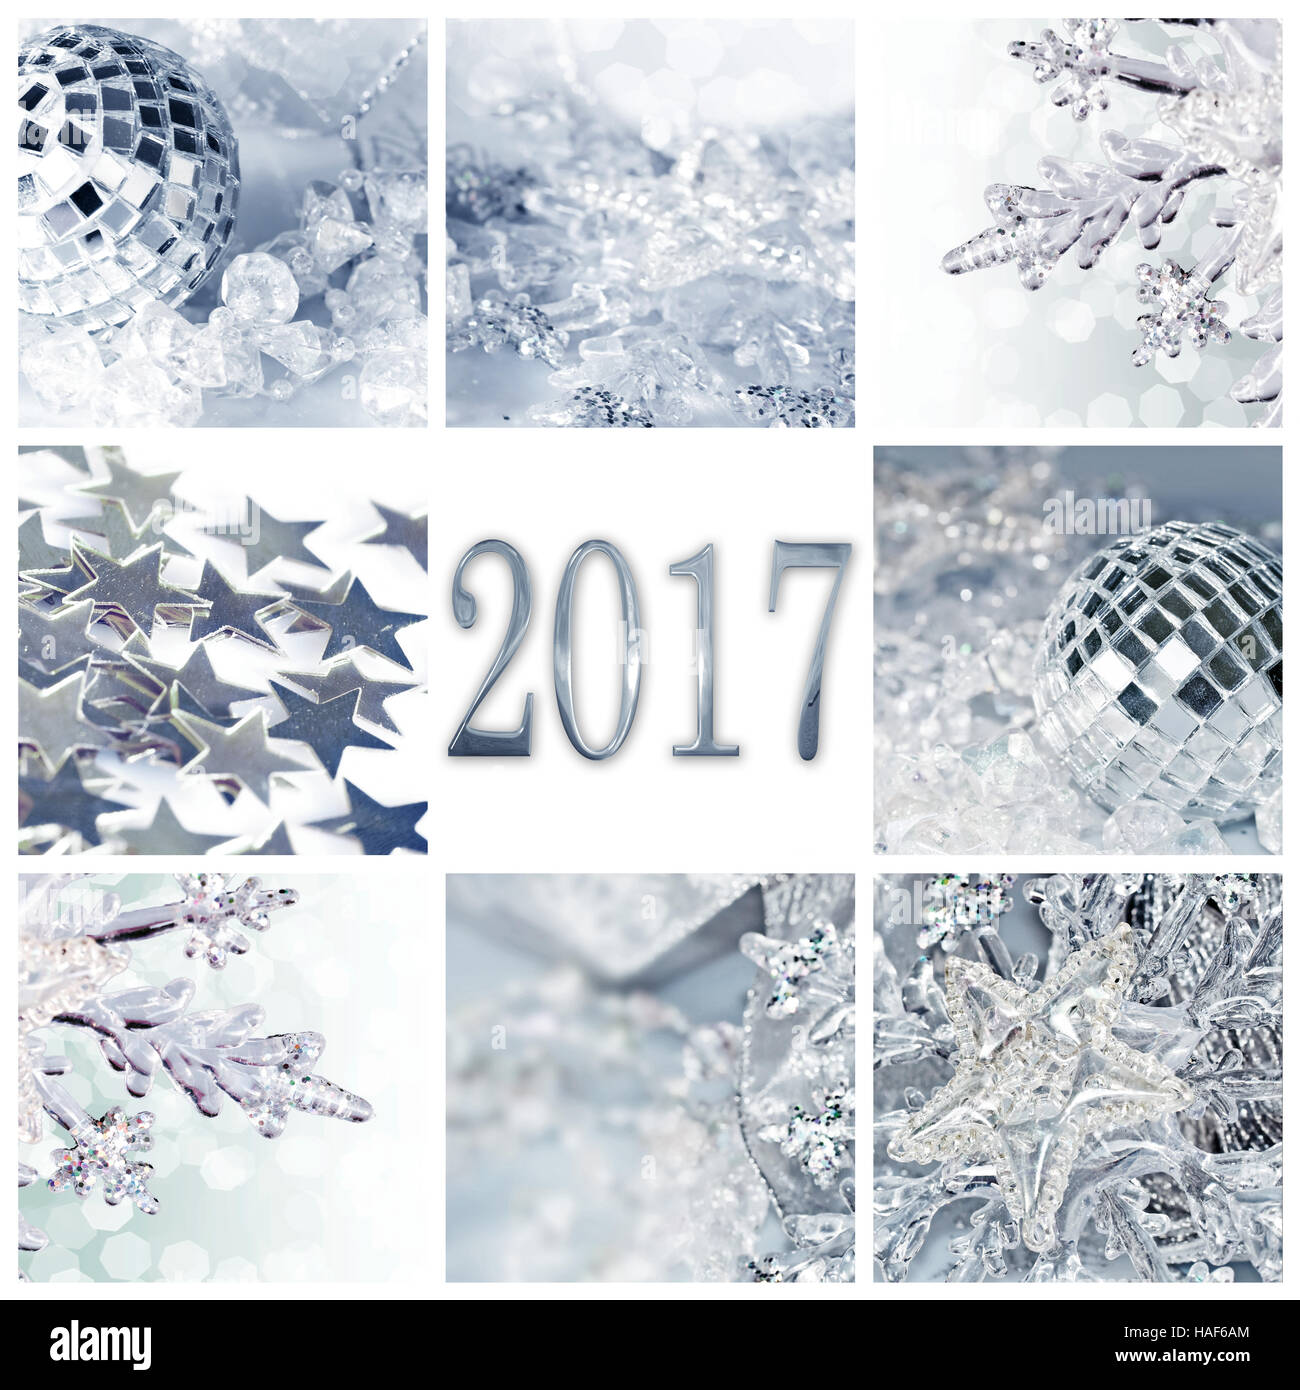 2017 Silver Christmas Ornaments Collage Square Greeting Card Stock